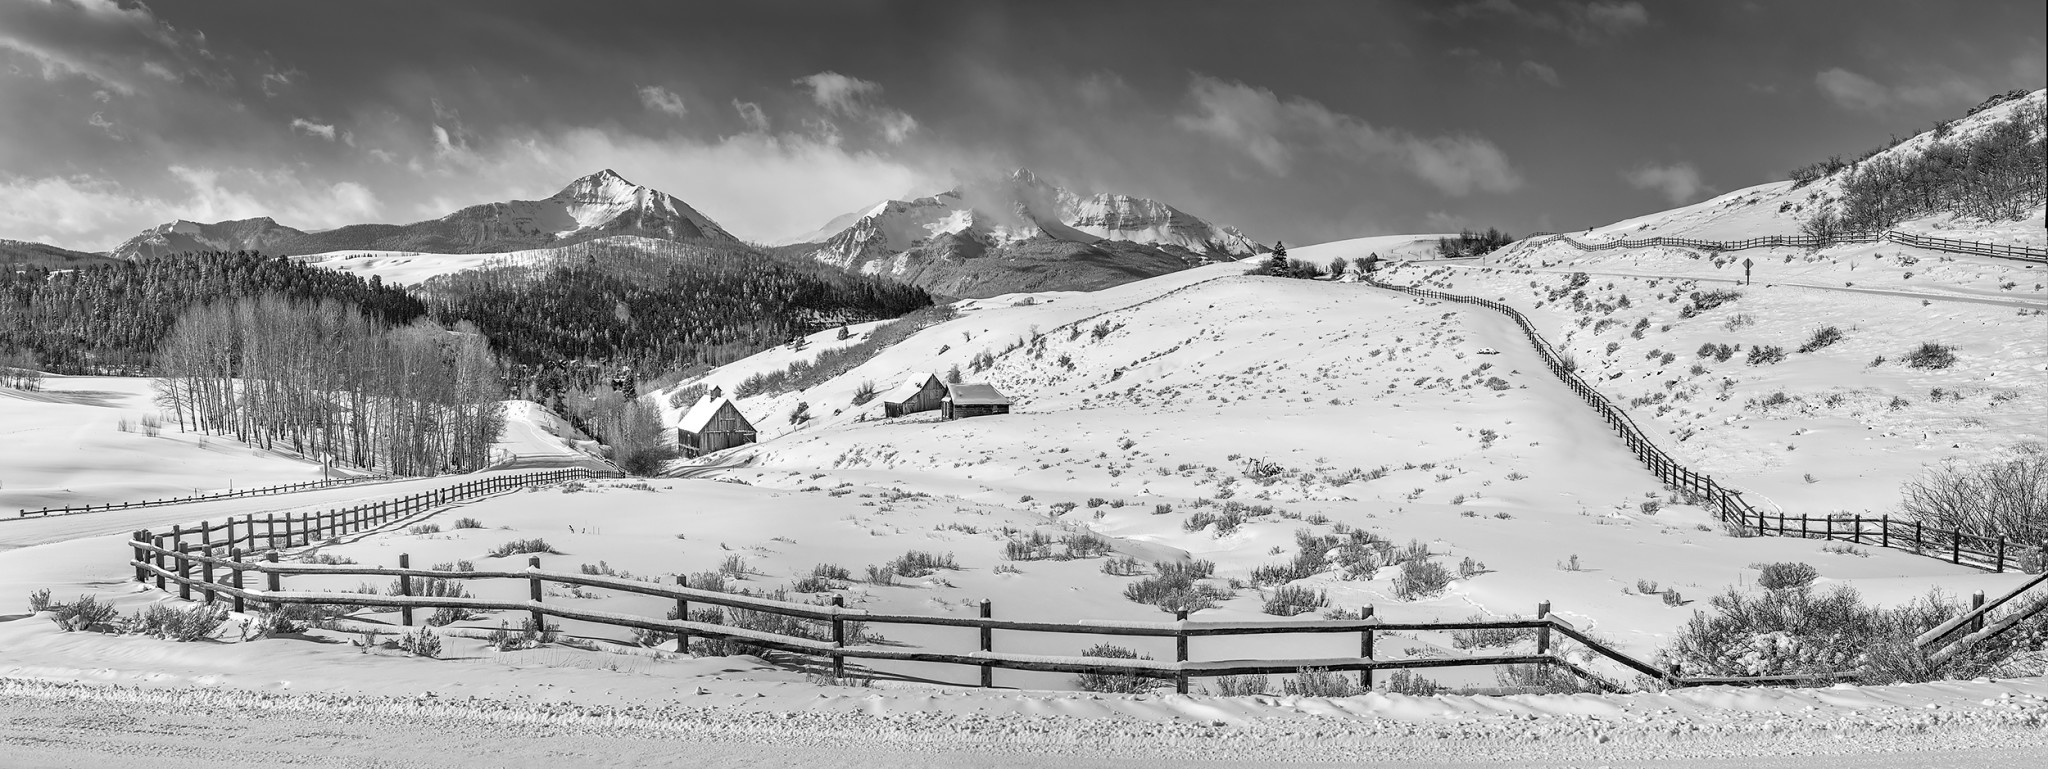 SNOW COVERED RANCH